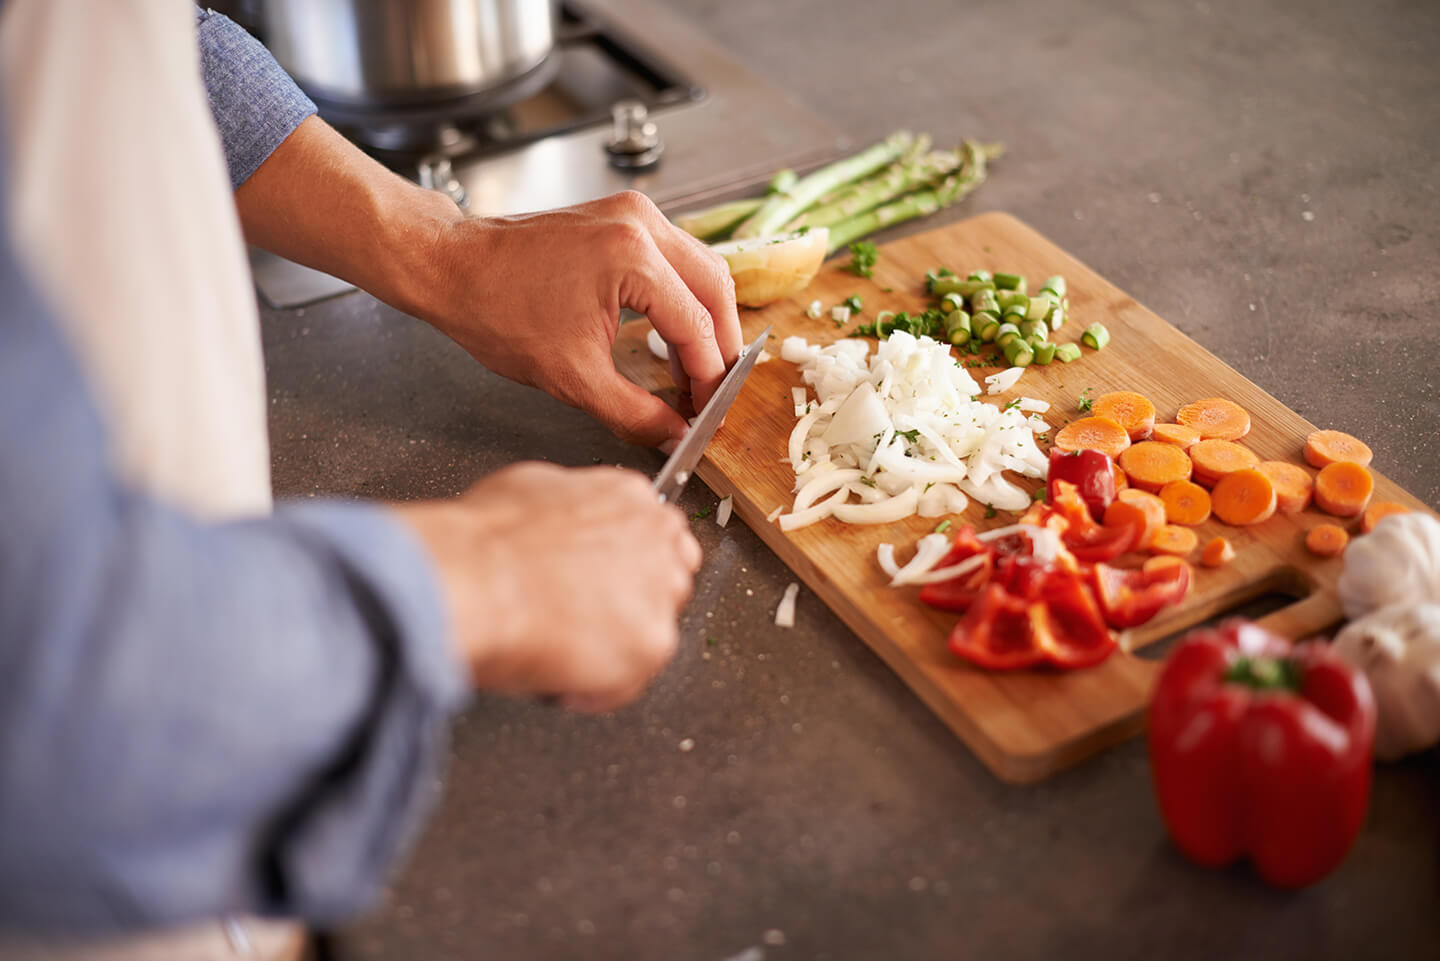 A person dicing white onions on a wooden cutting board along with diced asparagus and tomatoes.